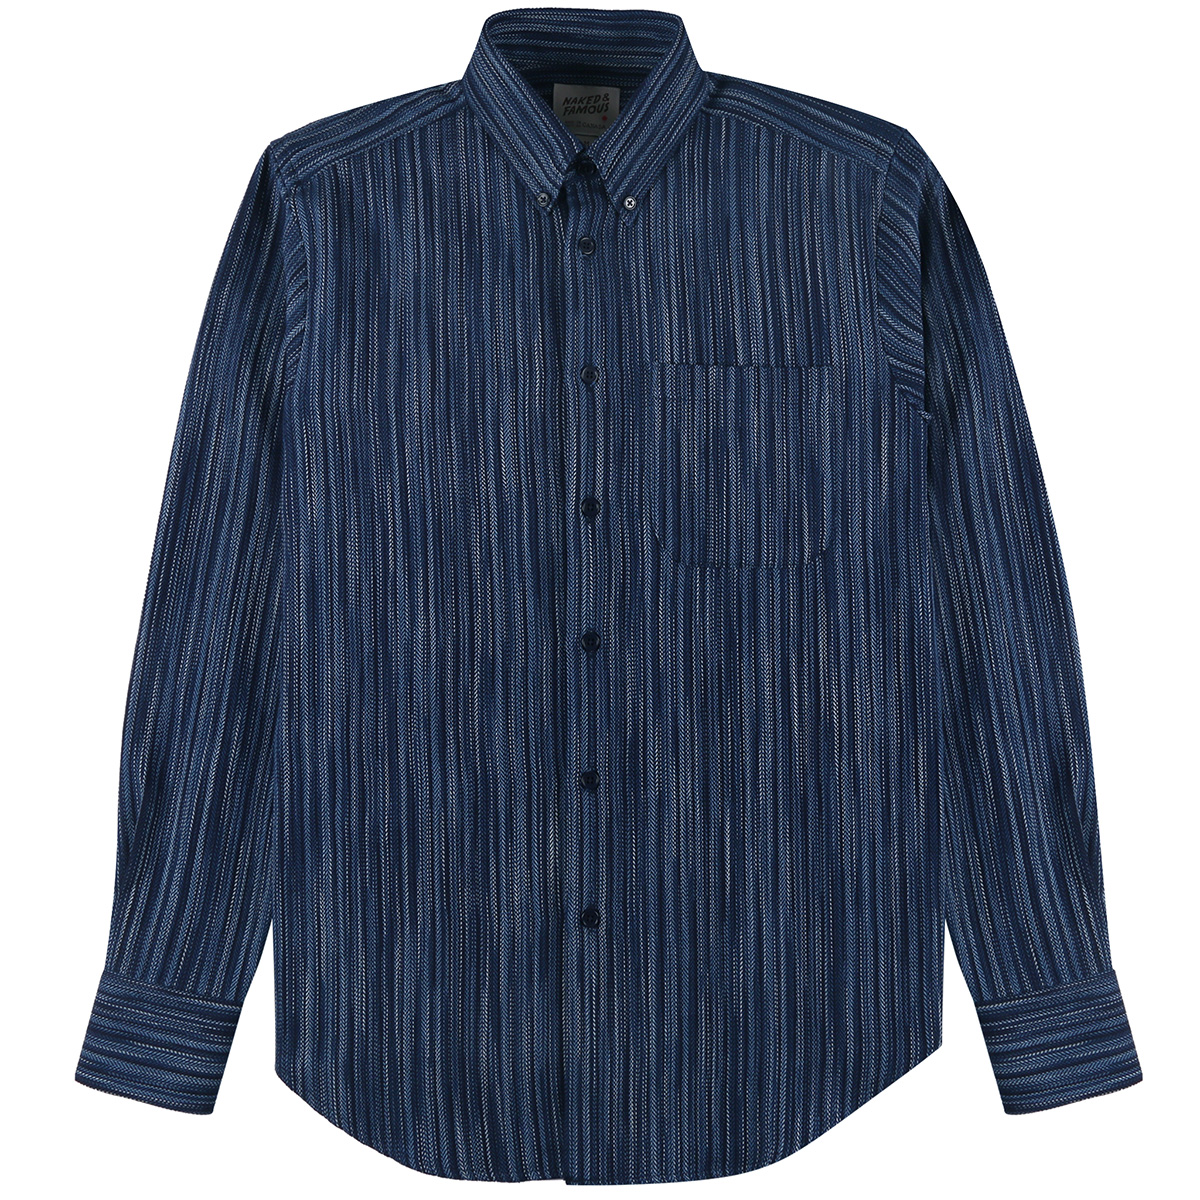 INDIGO STRIPES - Easy Shirt